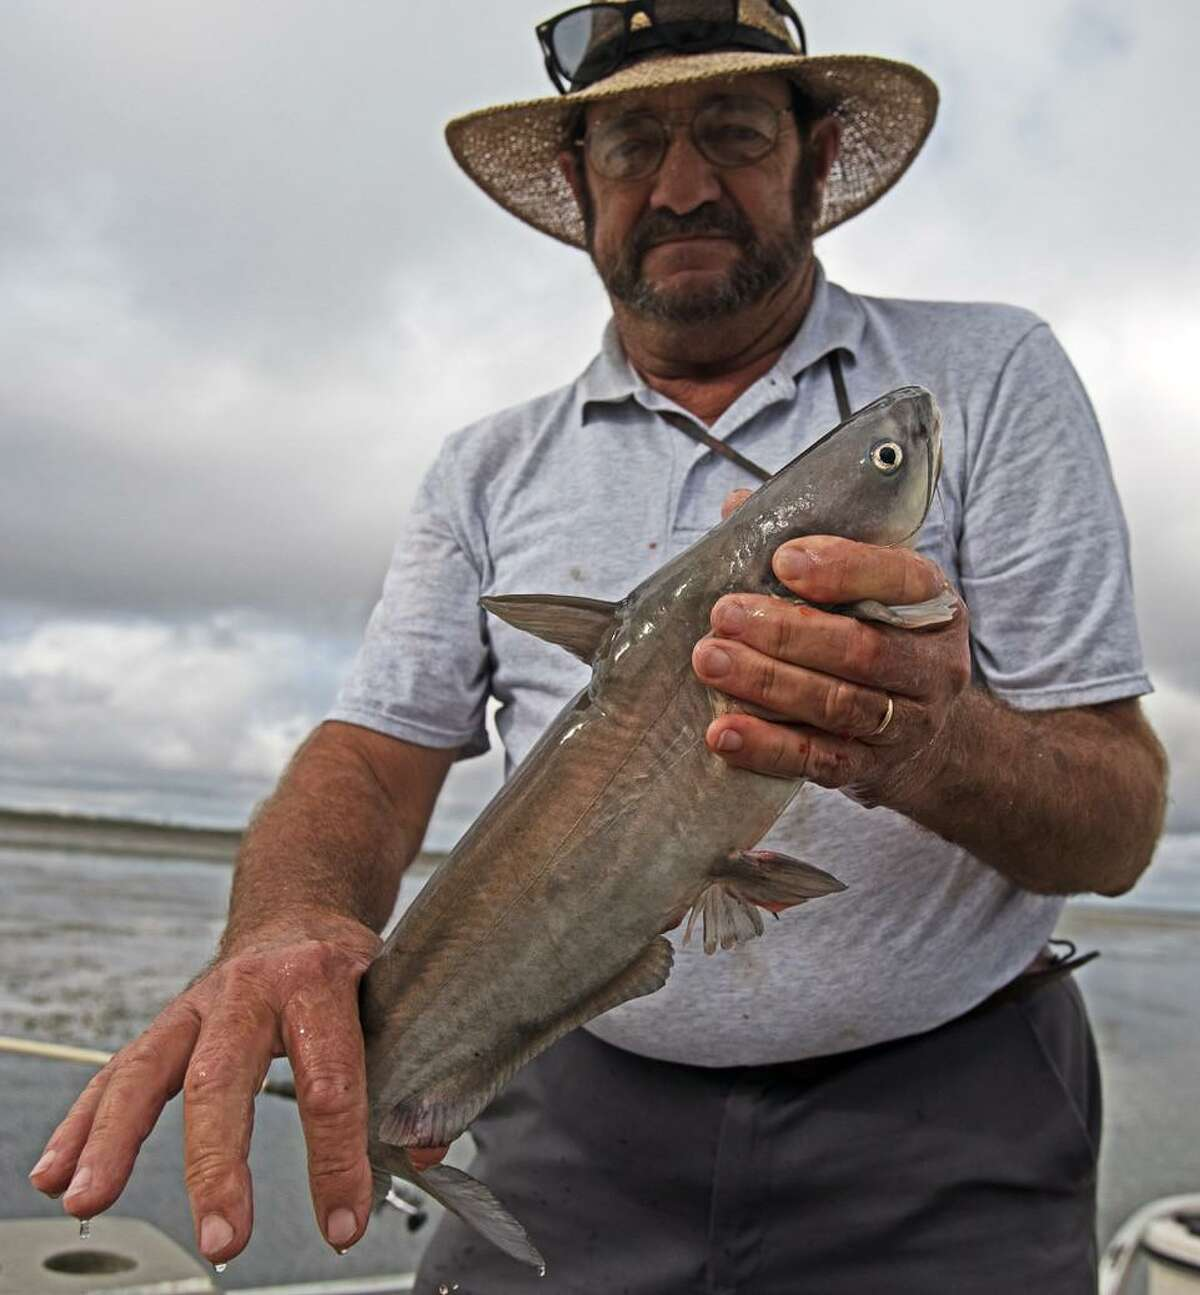 """Fishing guide Marvin """"Catfish Marv"""" Elledge displays a 22-inch blue catfish at Choke Canyon Reservoir, where he expects good fishing for such larger fish through the winter."""